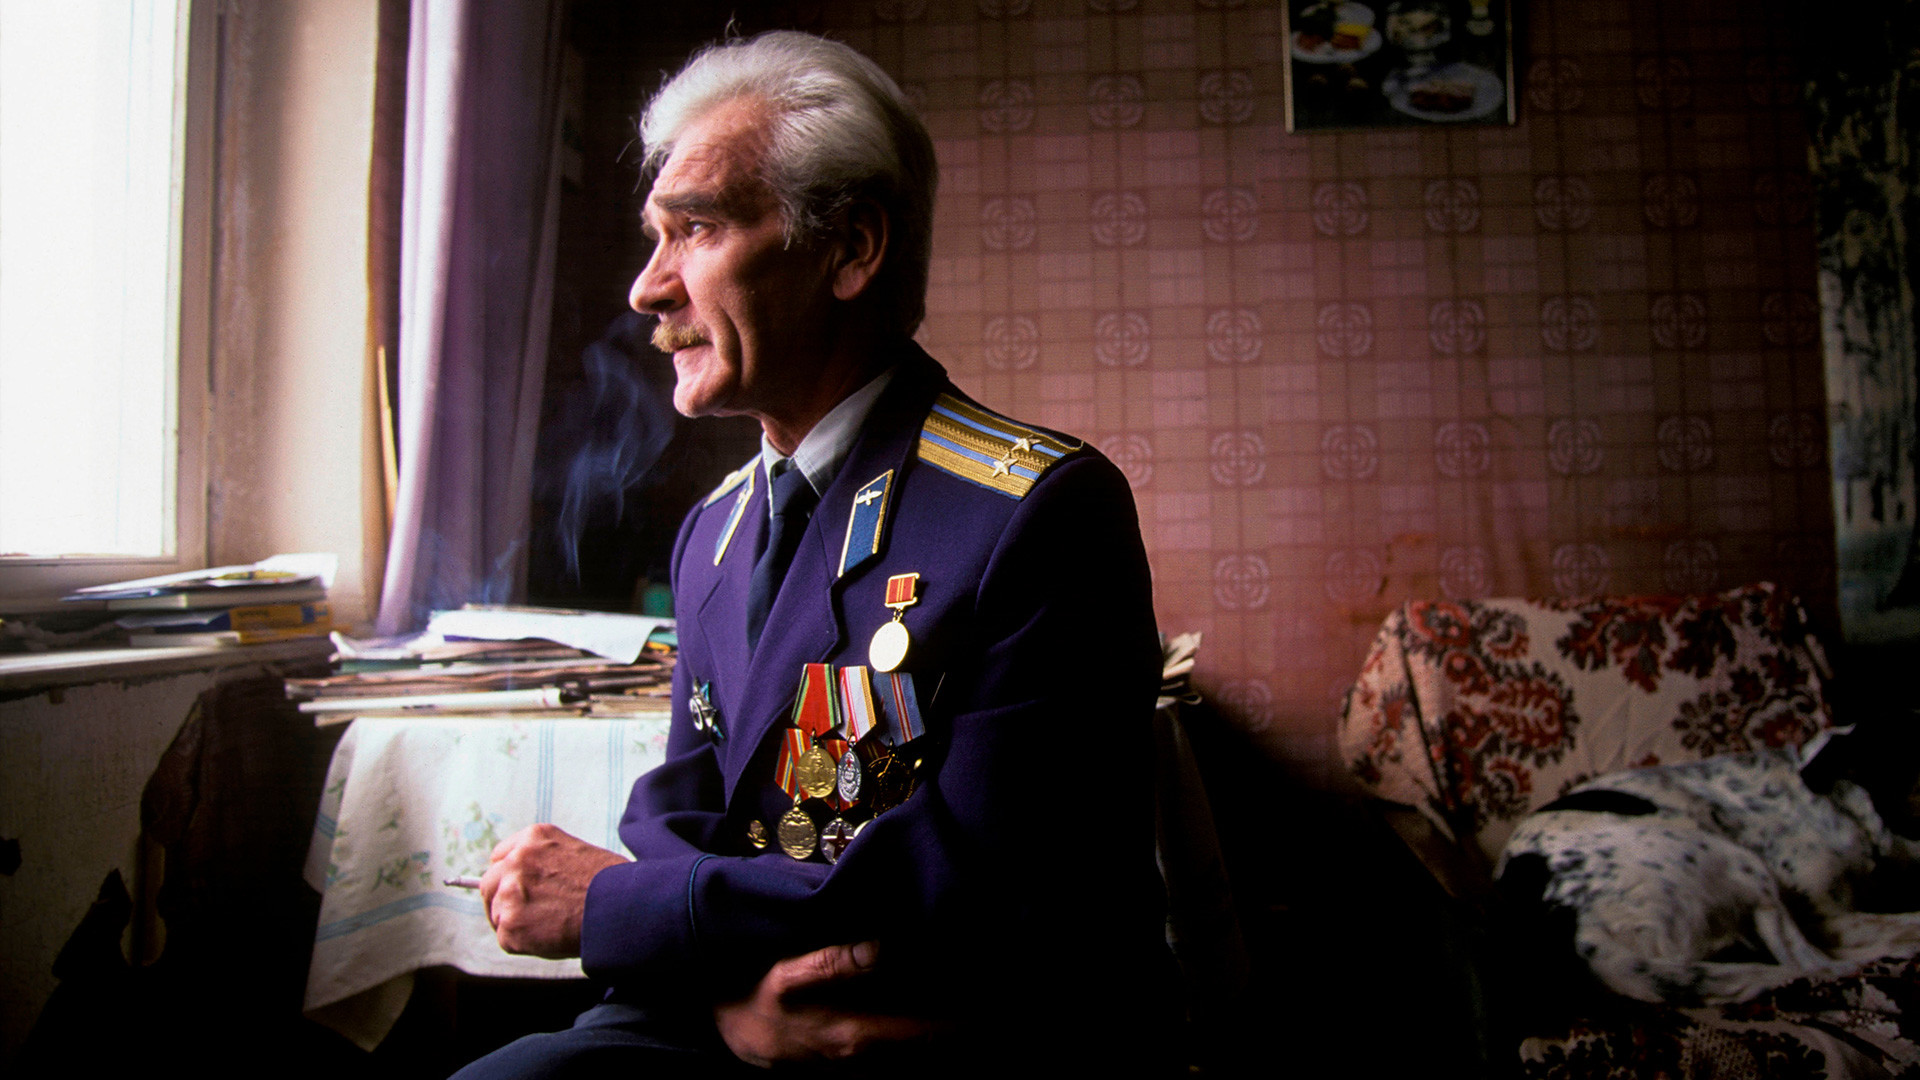 Stanislav Petrov wearing his military uniform in 1999.